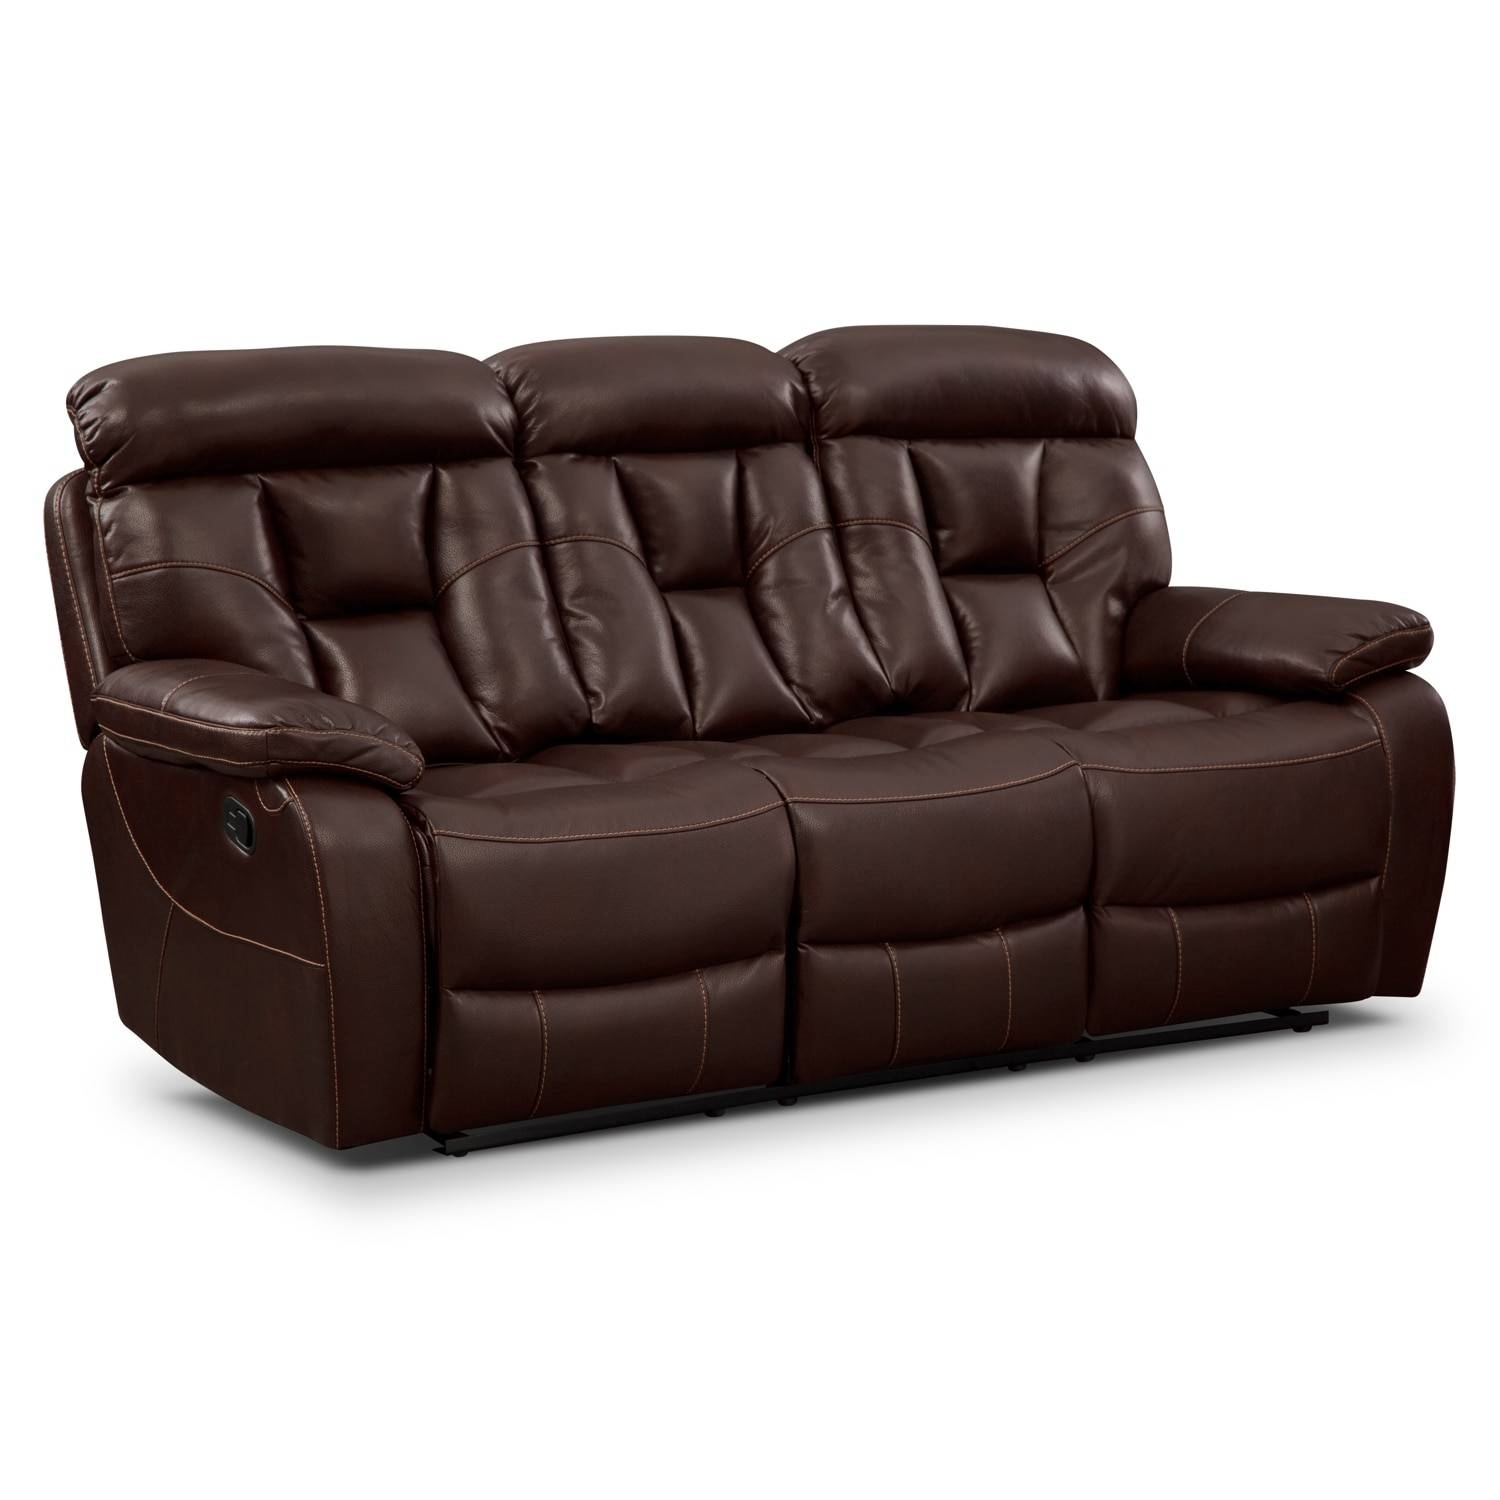 Sofas & Couches | Living Room Seating | Value City Furniture in Sofa Chair Recliner (Image 26 of 30)